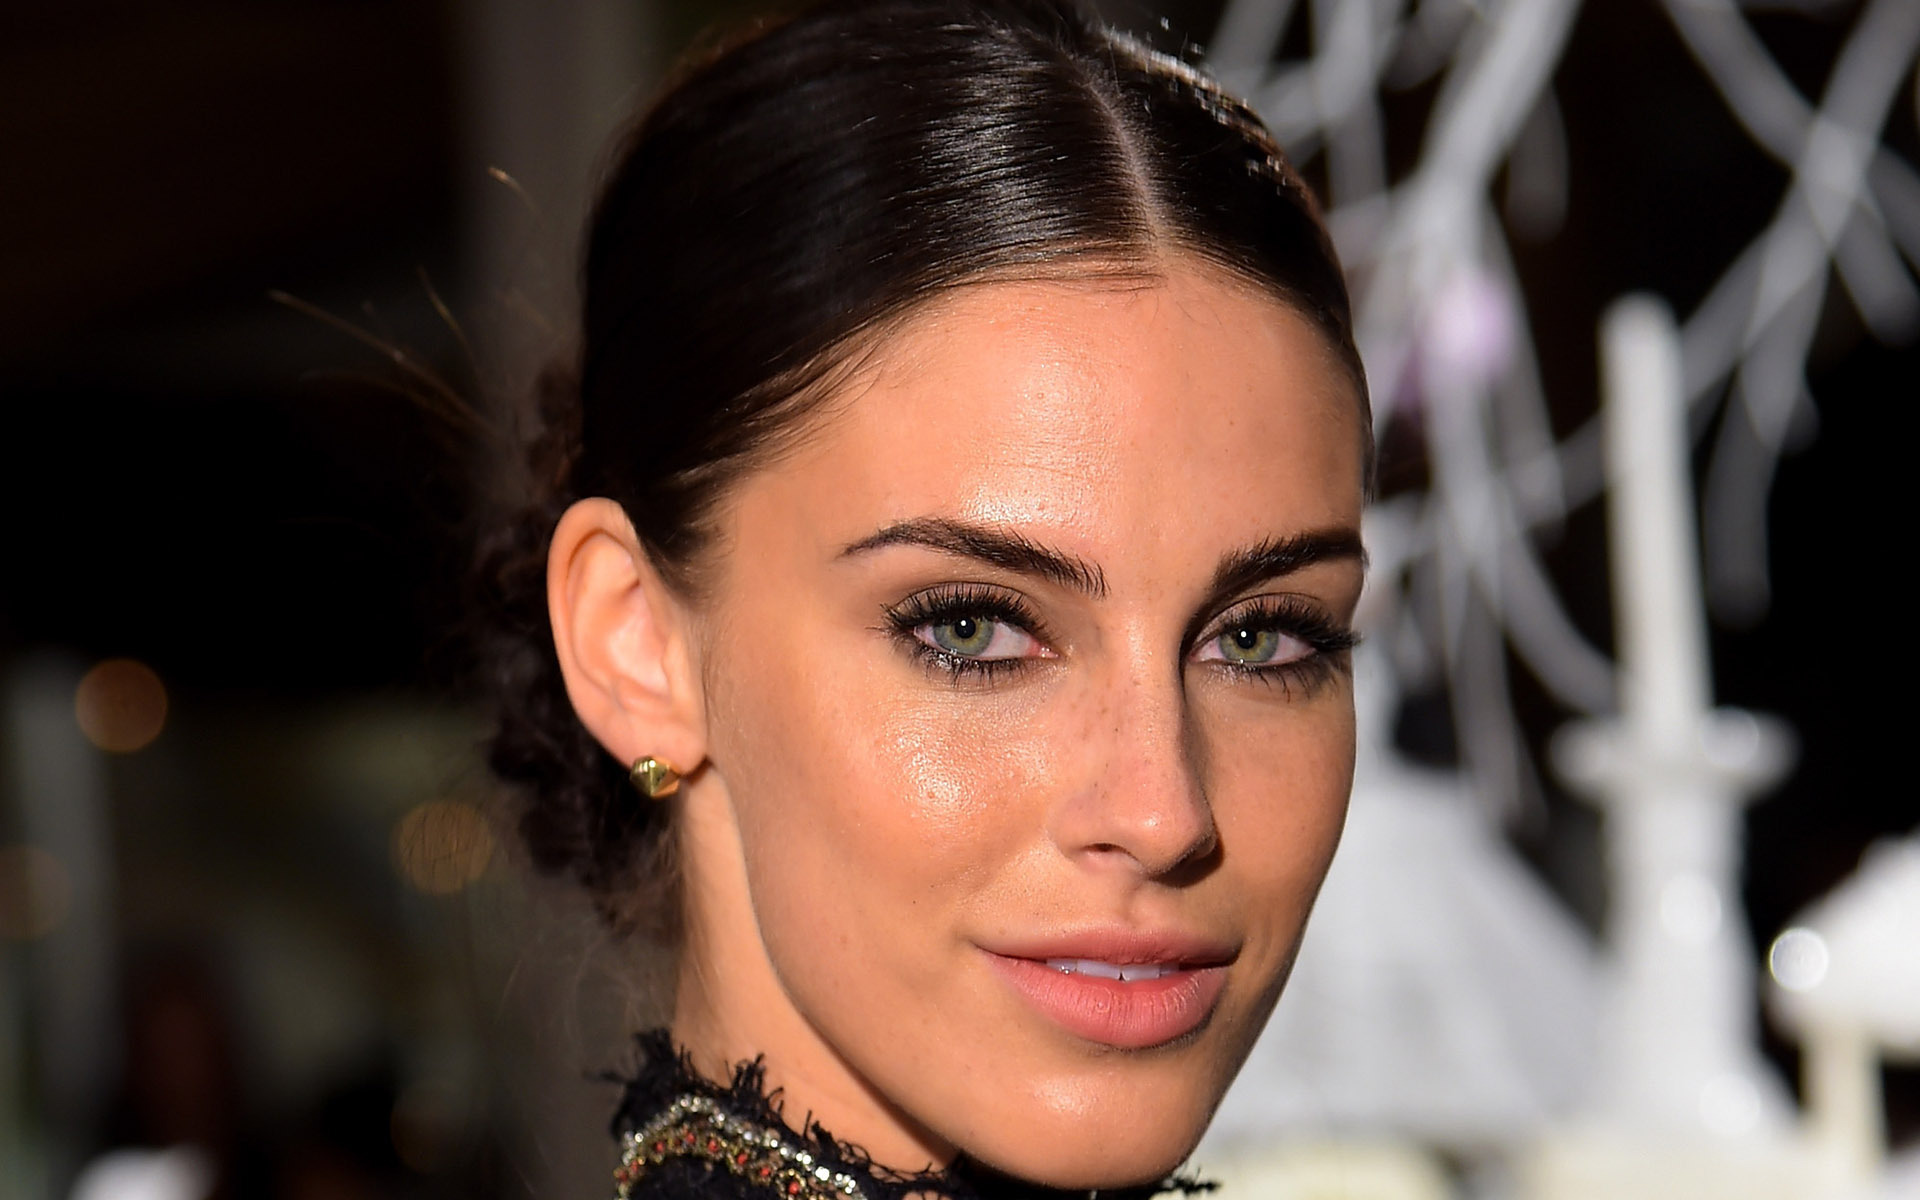 jessica lowndes face wallpaper 51130